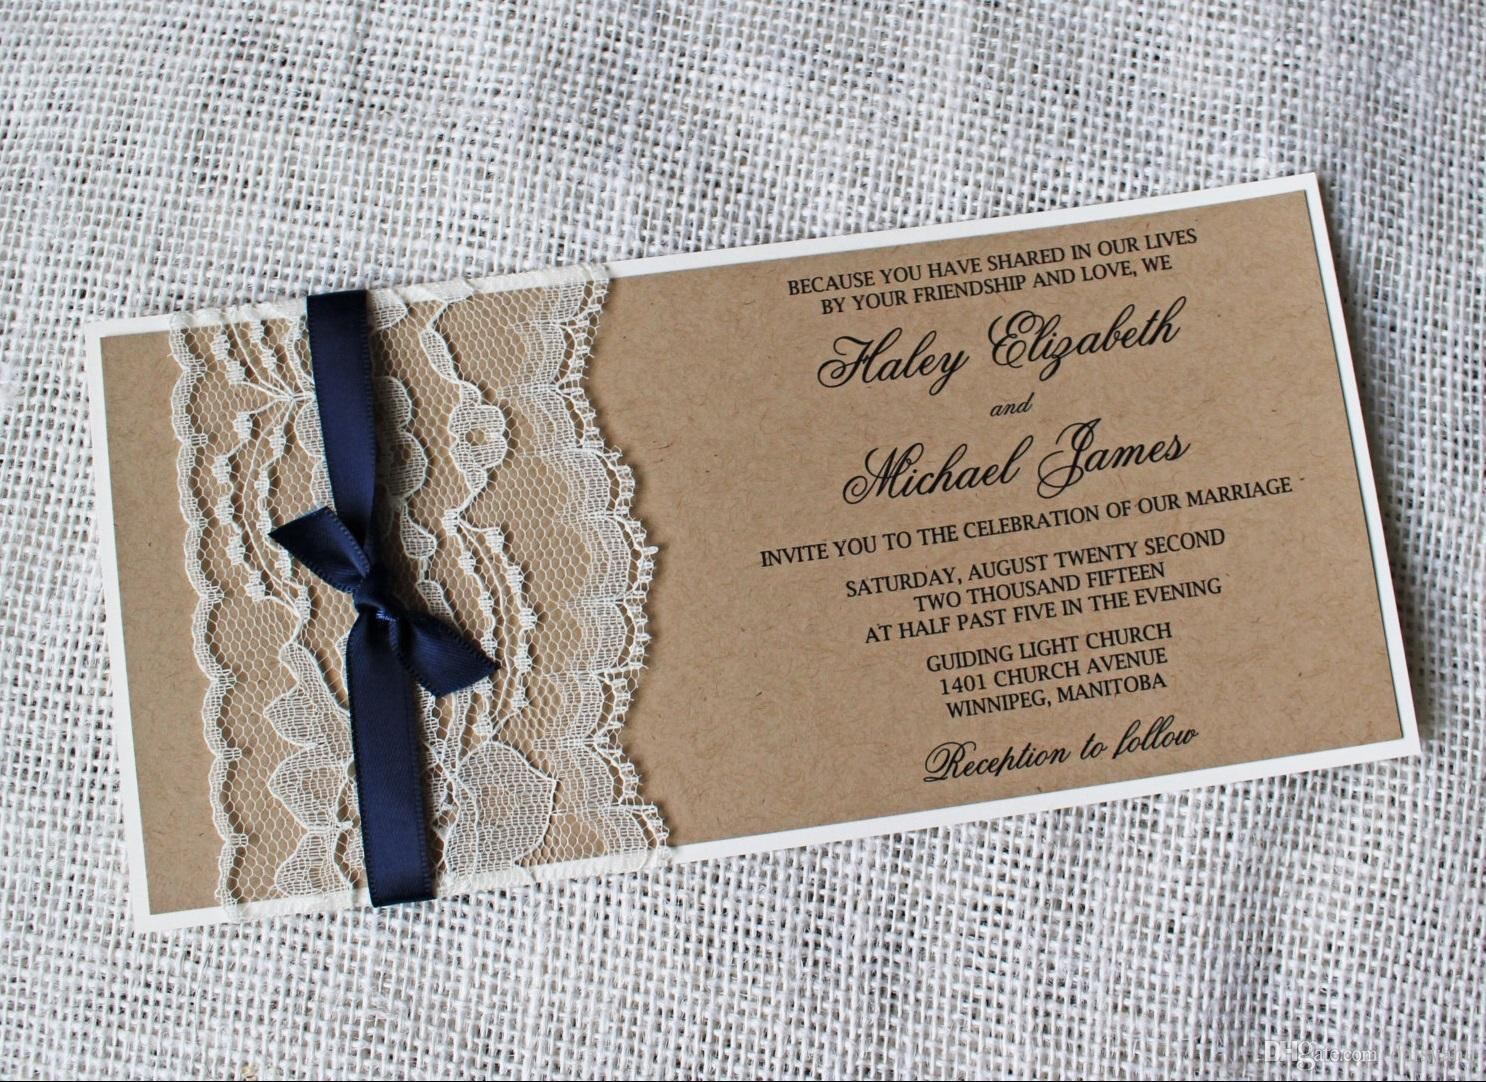 2018 Rustic Wedding Invitation Set Country Wedding Kraft Paper Invitation Cards Printable Ribbon And Lace Custom Made Handmade Diy Wedding Favor From